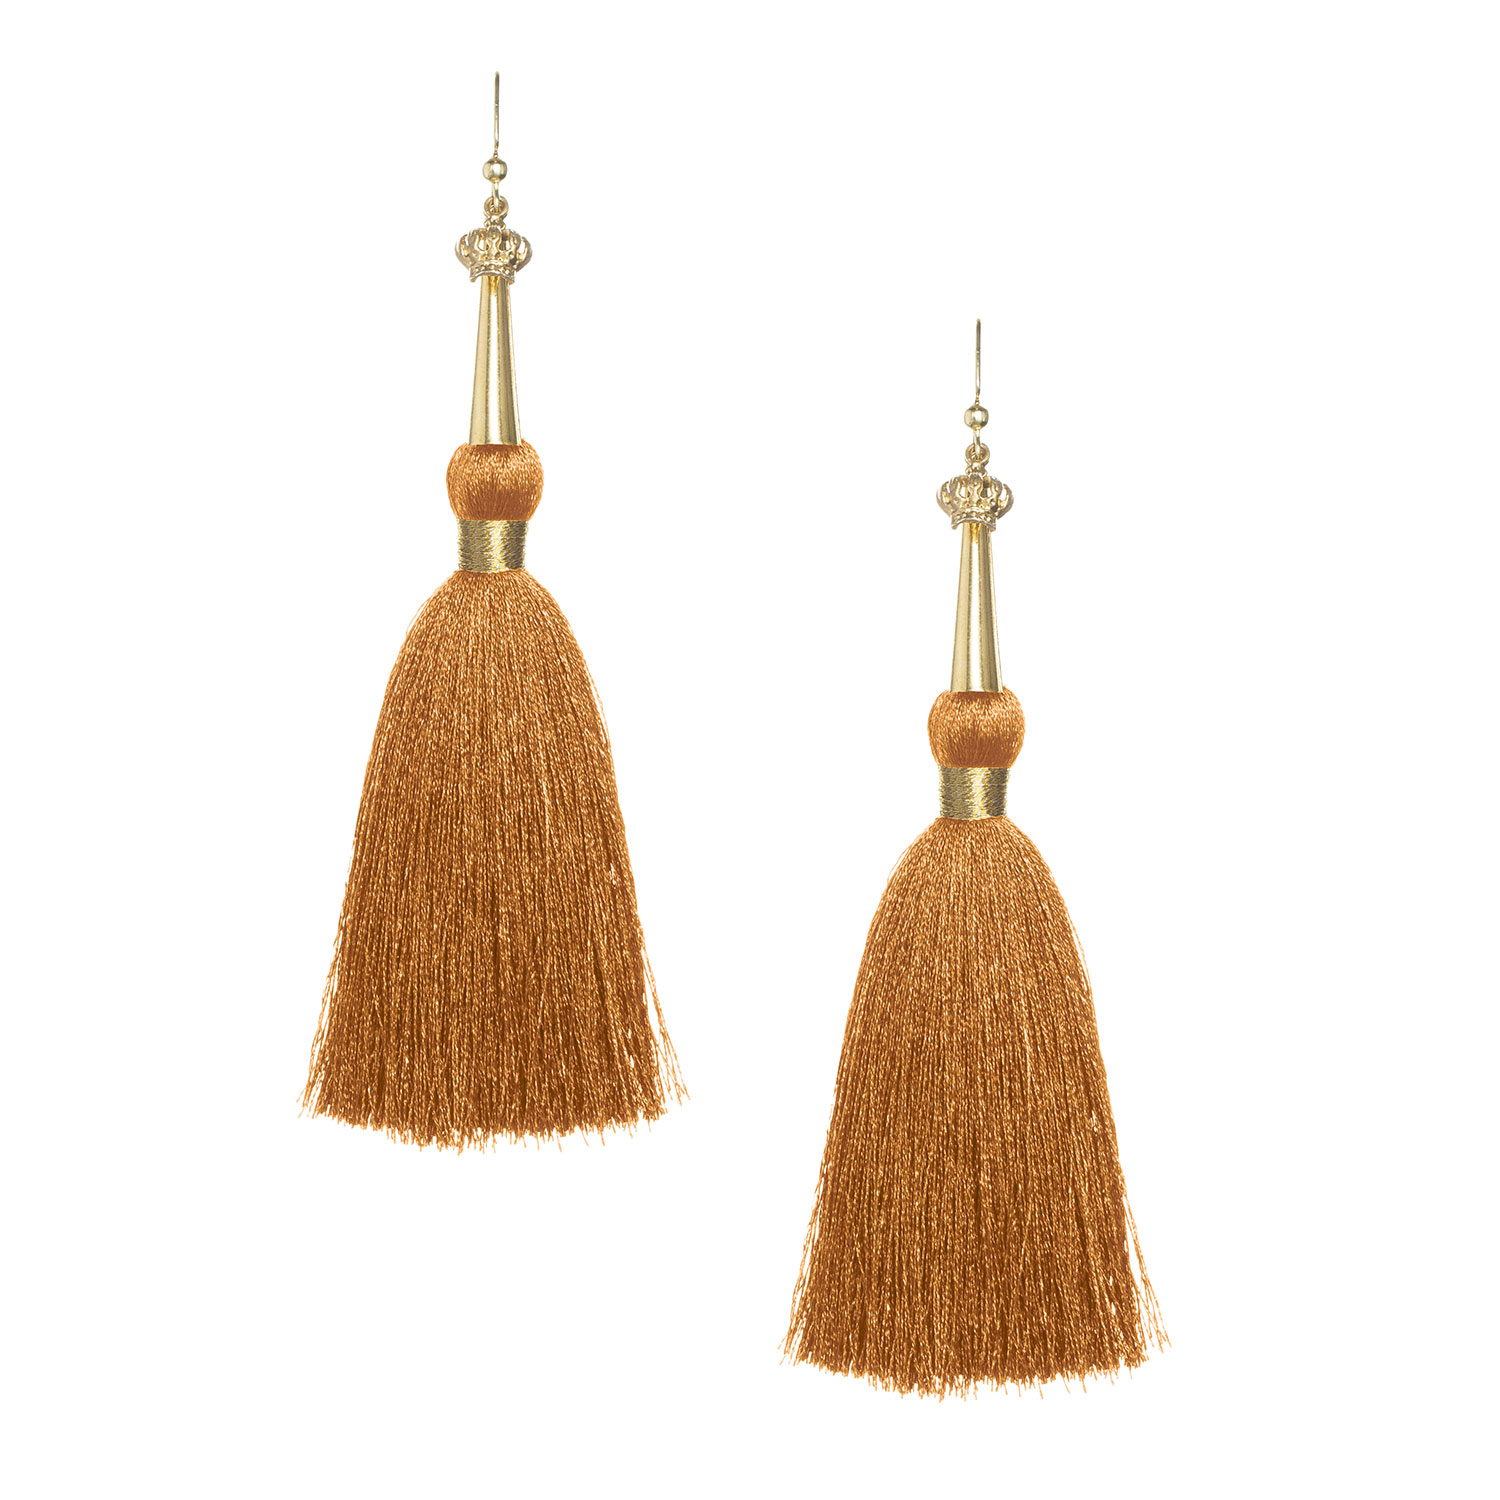 Bronze Silk Tel Earrings With Gold Cap